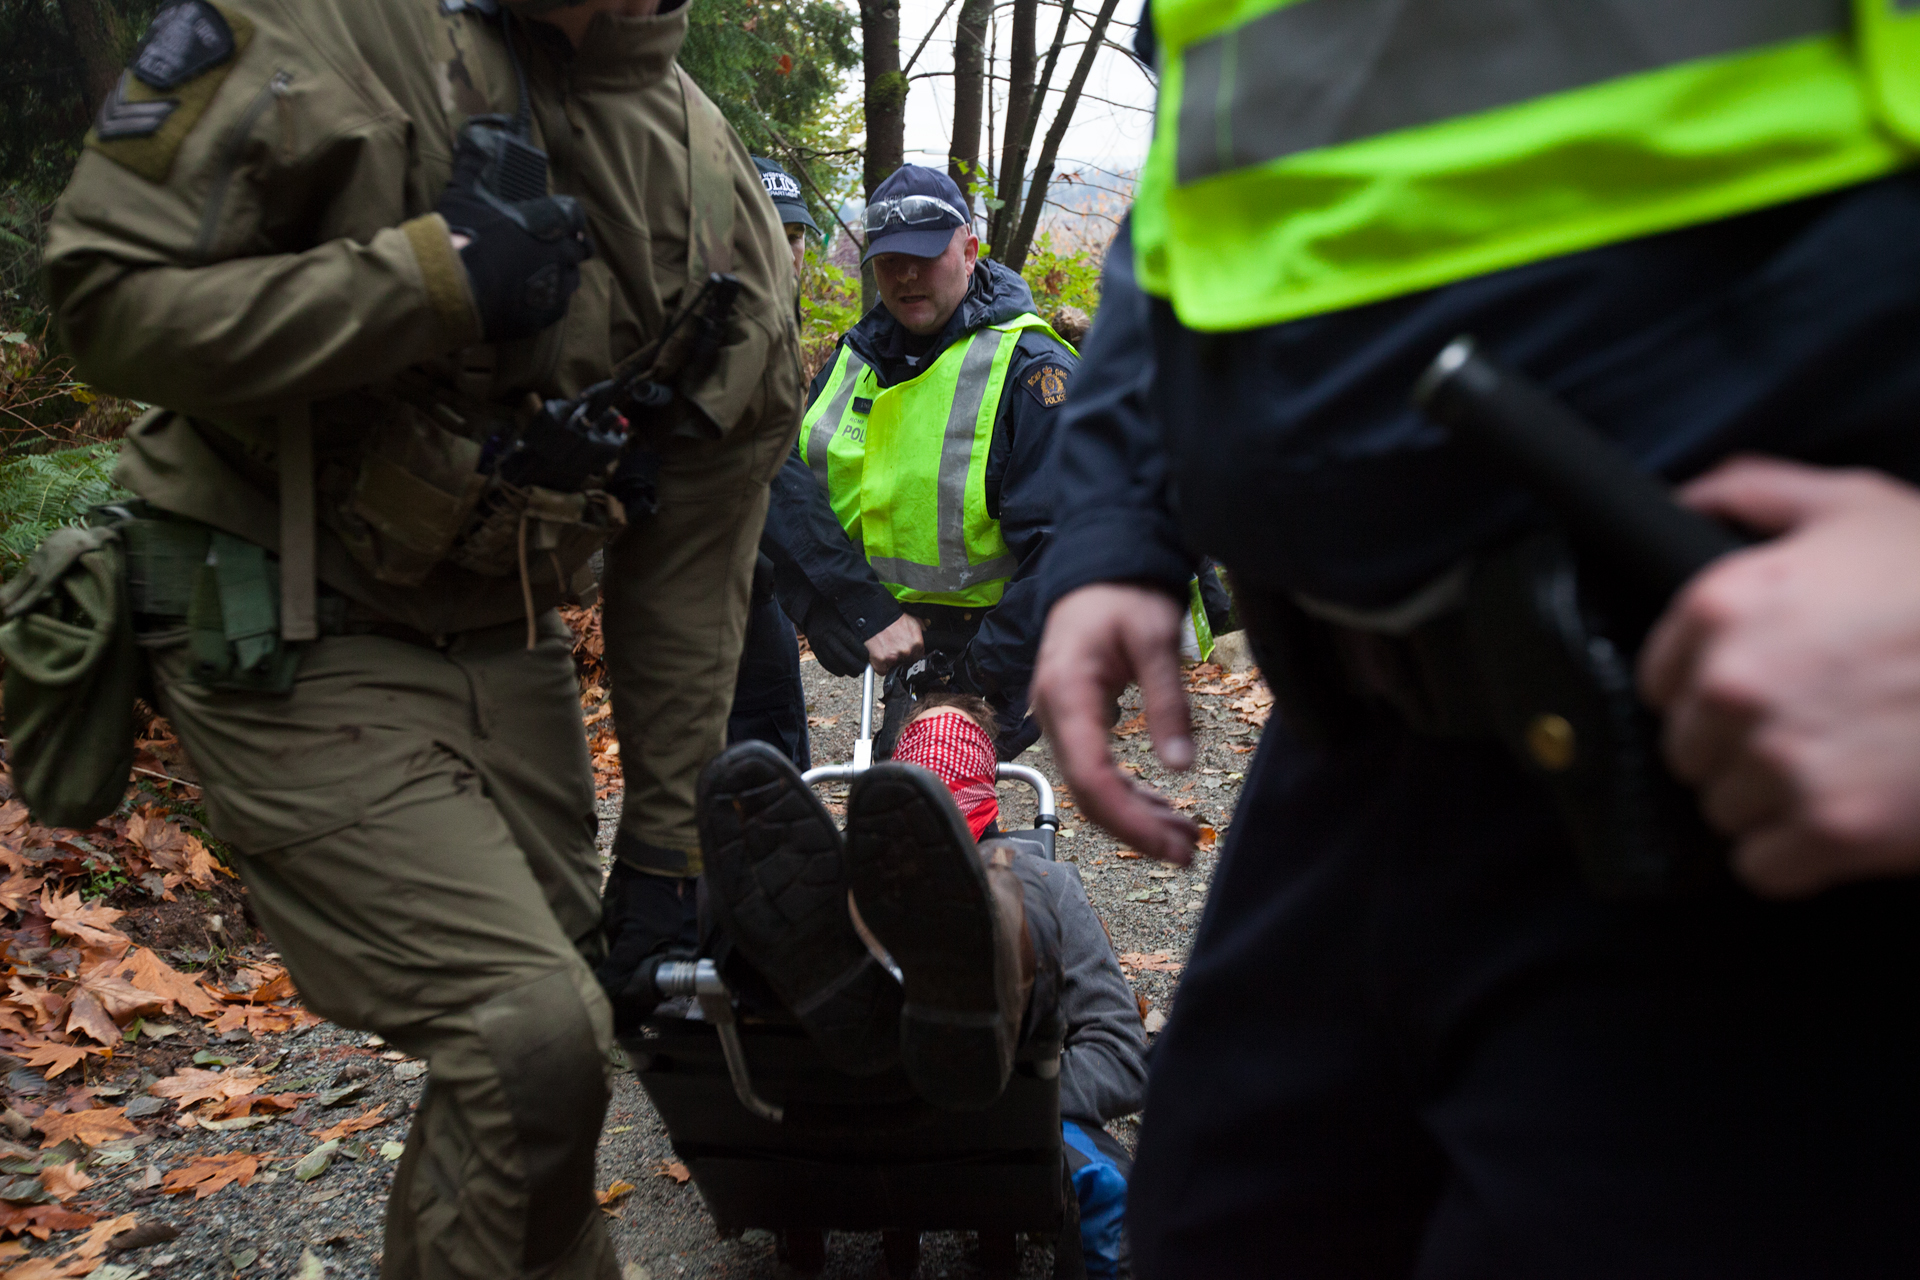 The next morning, police removed the protestor from the tree and brought him to jail.